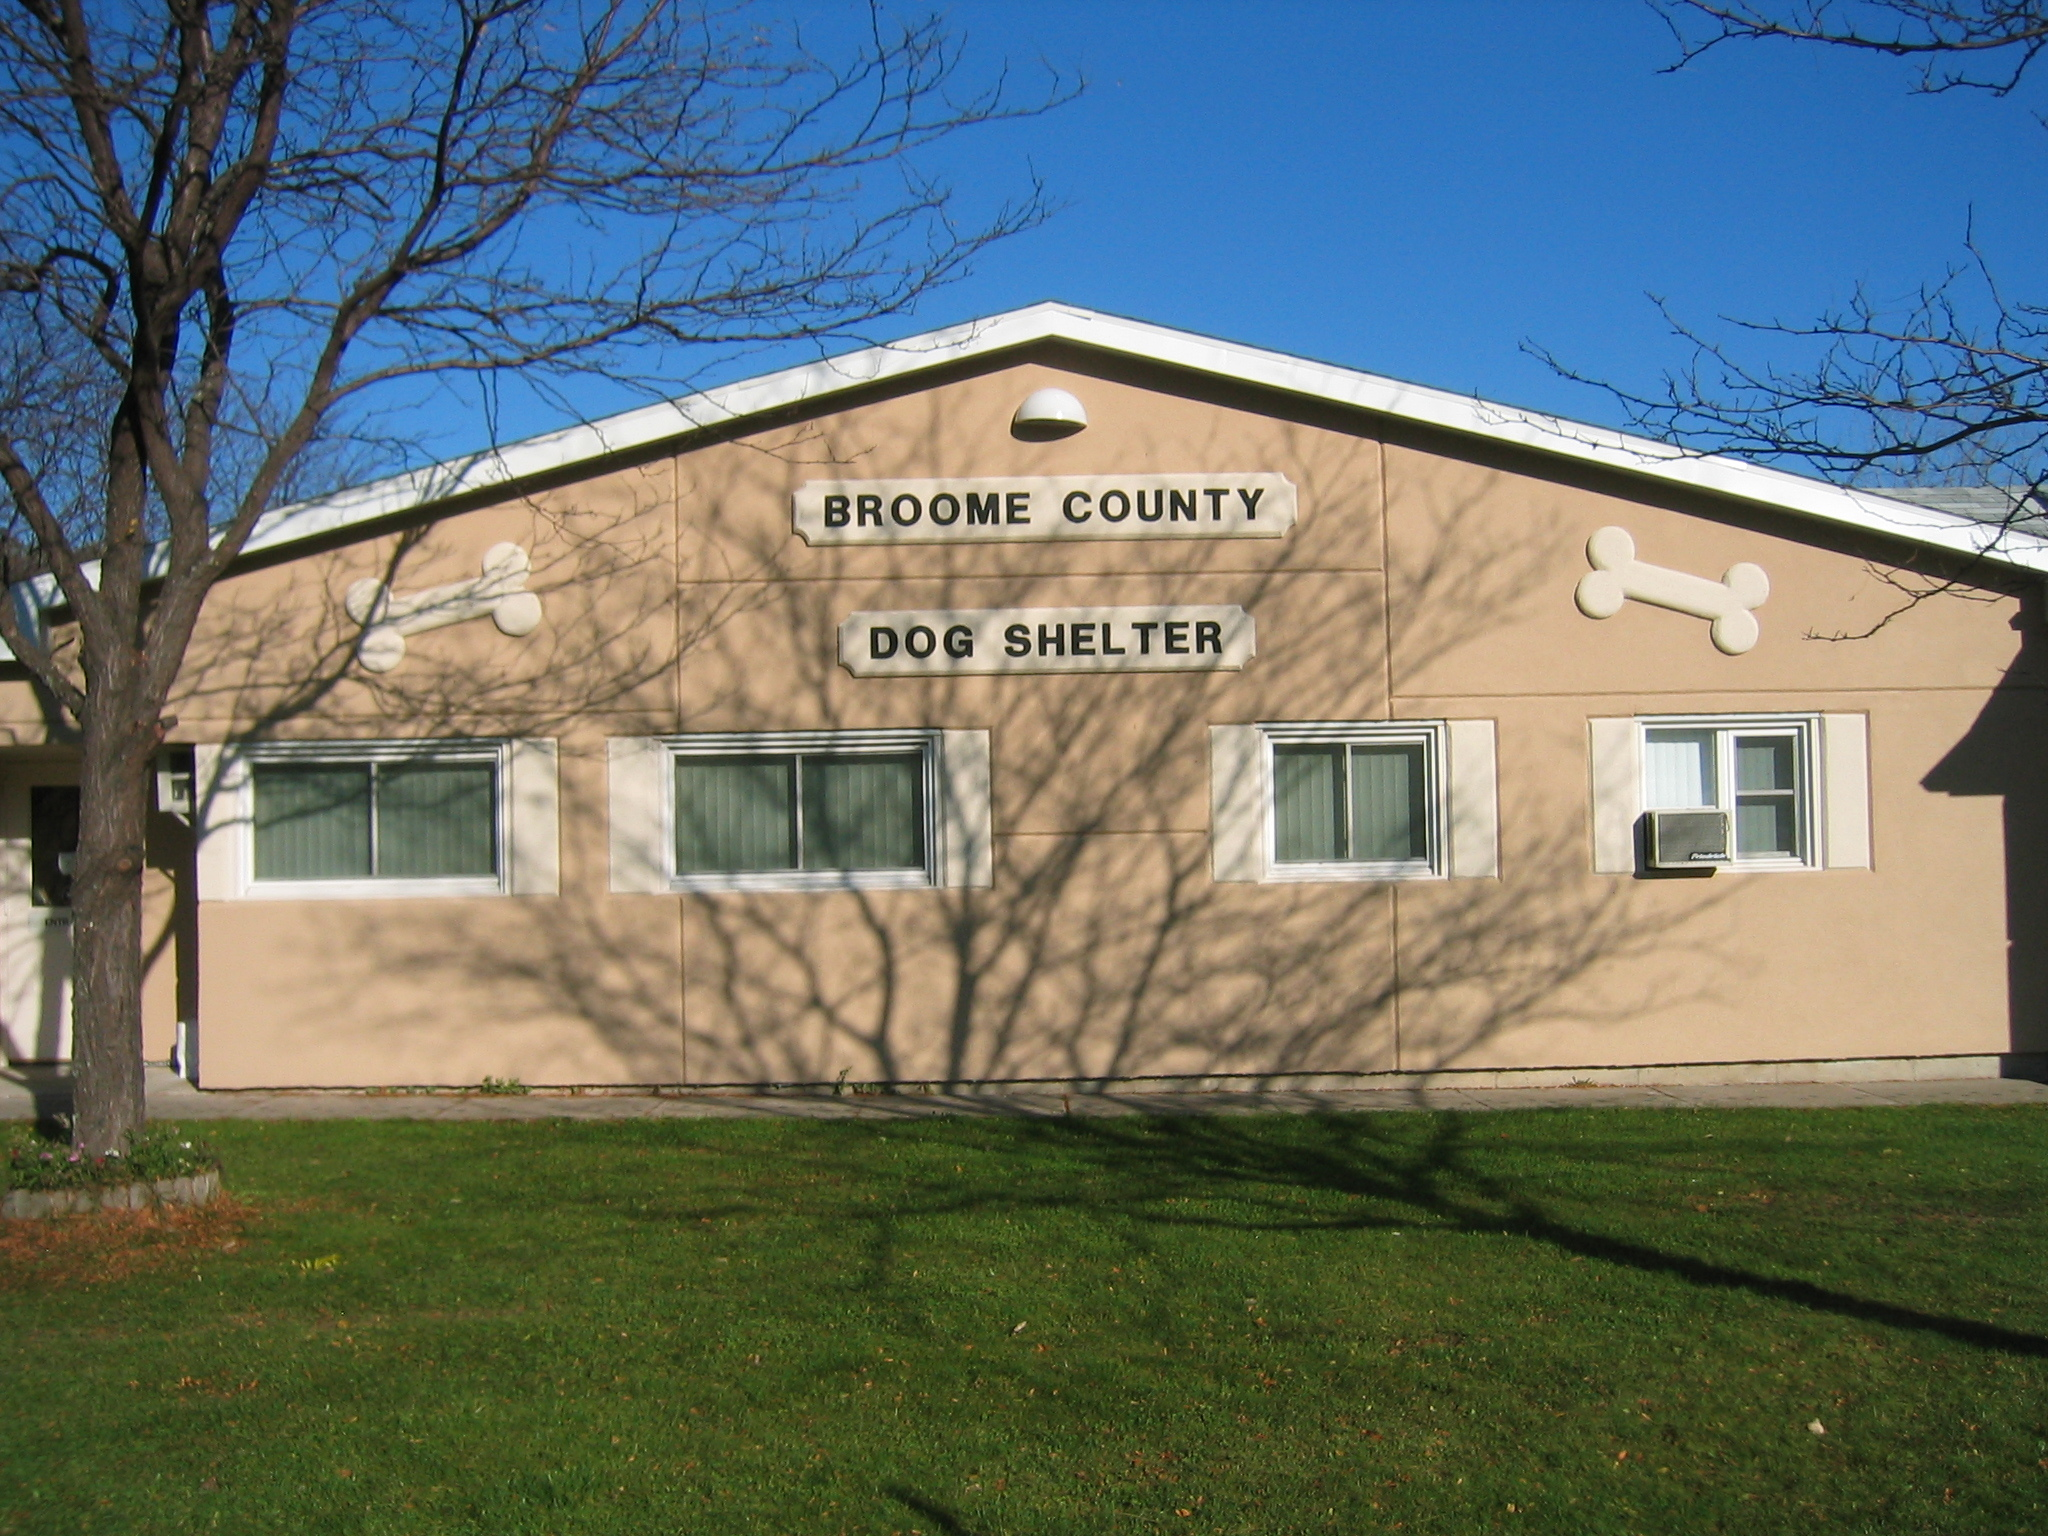 Broome County Dog Shelter